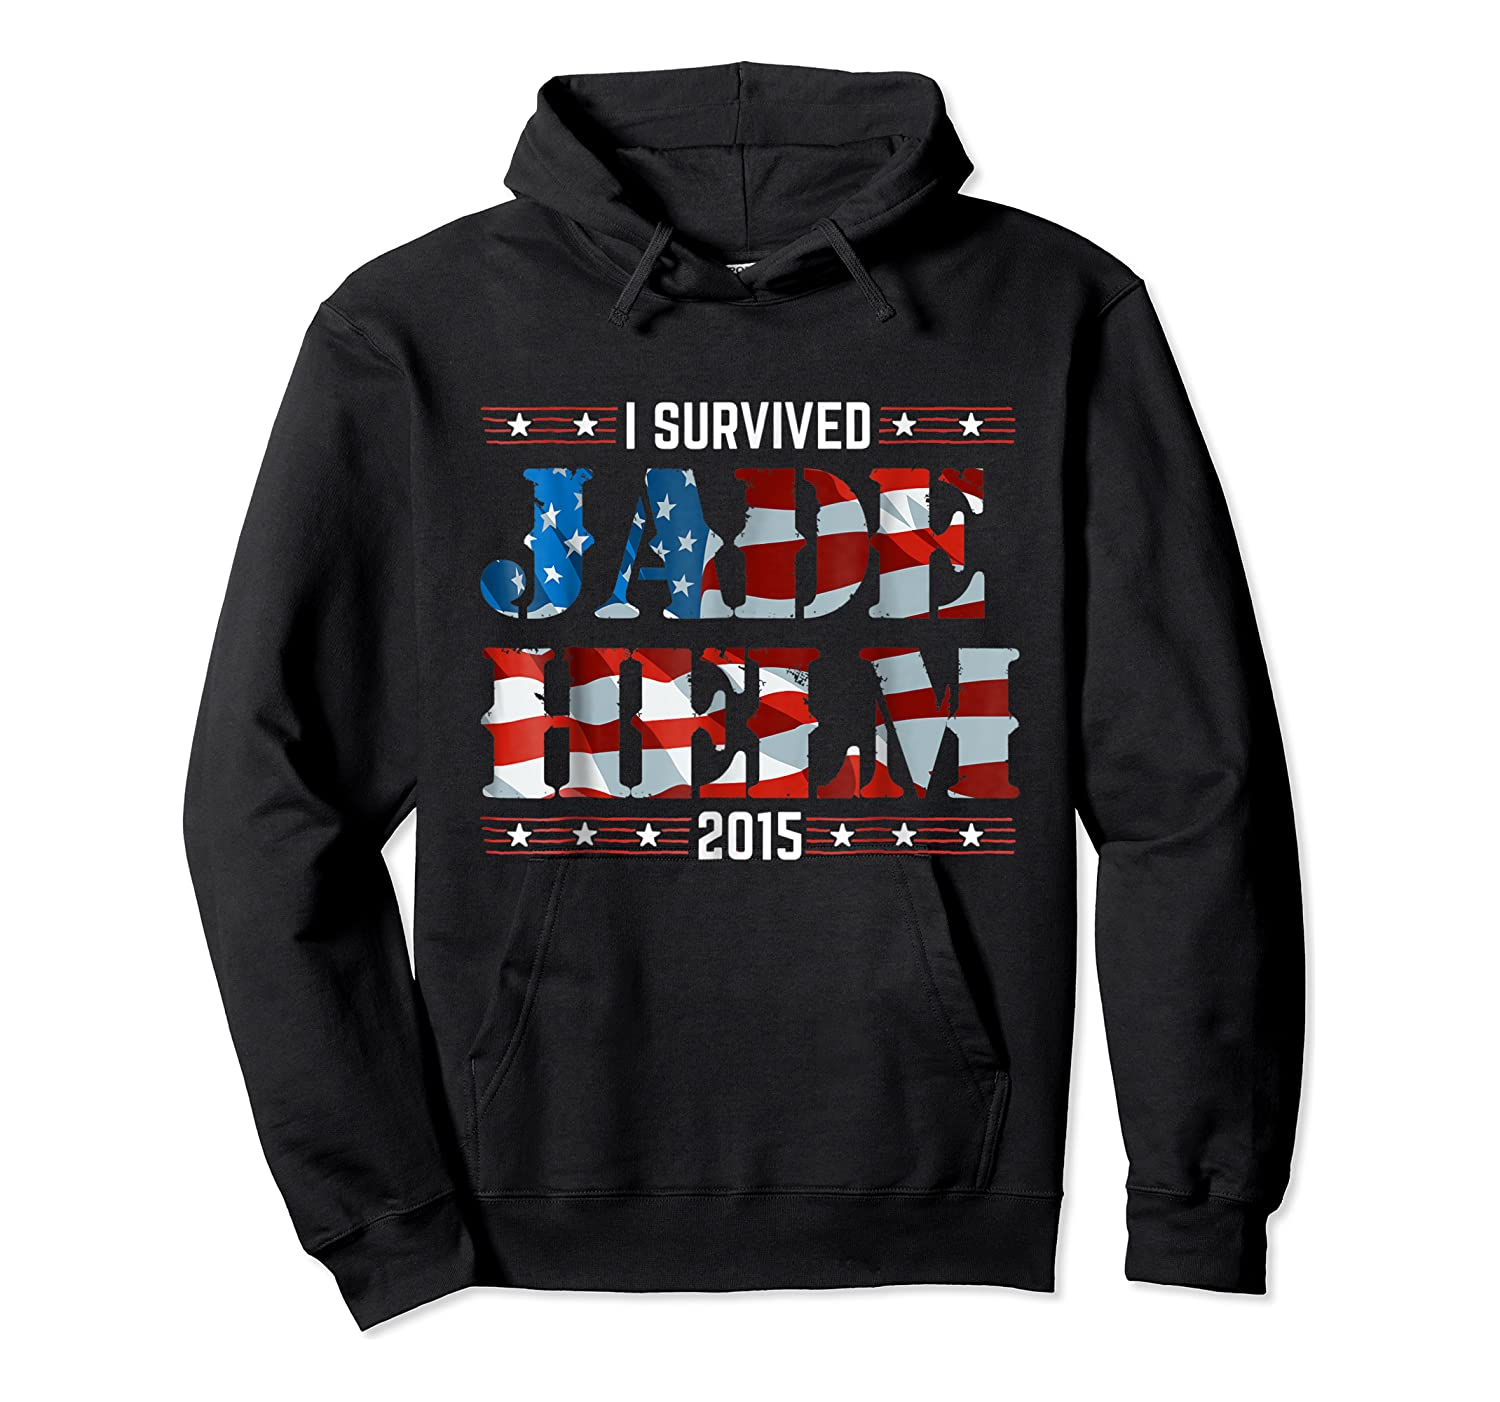 Jade Helm 15 Conspiracy Theories T Shirt Usa Army Political Unisex Pullover Hoodie